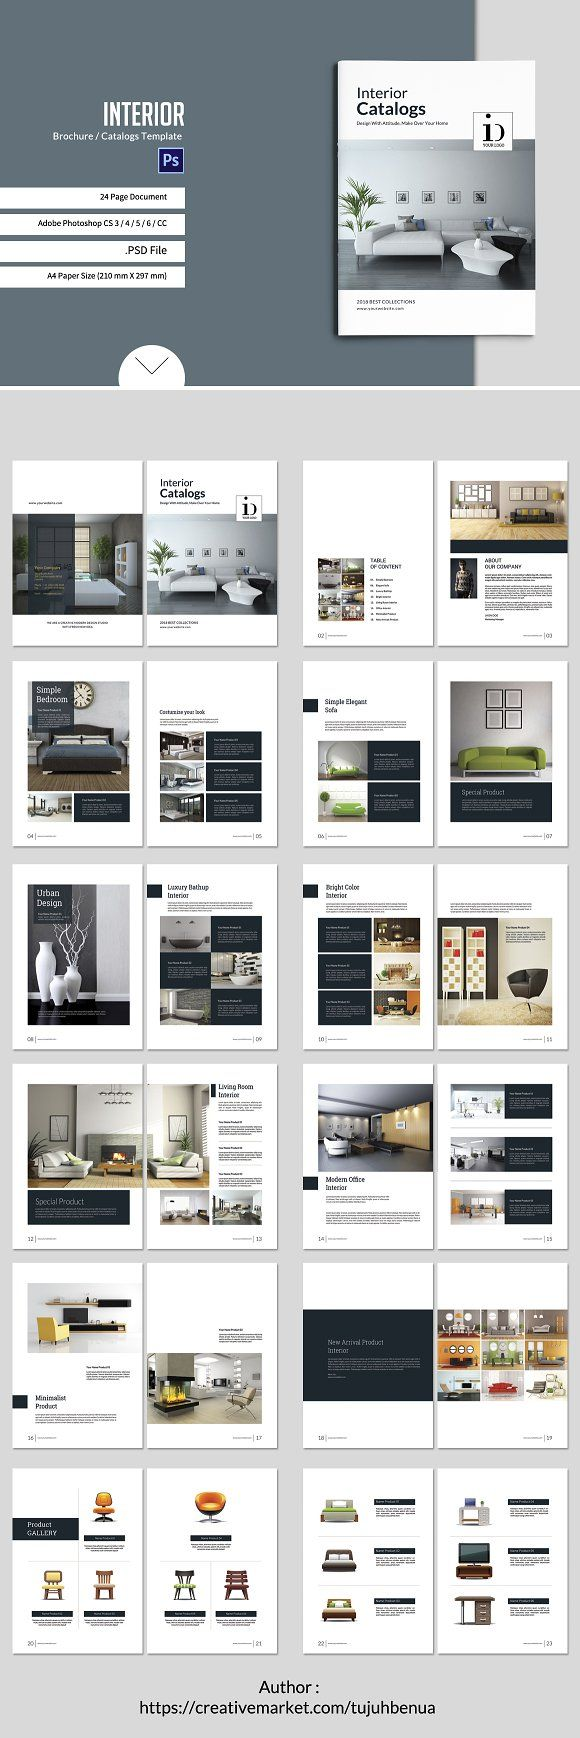 Interior Brochure Catalogs Template By Tujuhbenua On